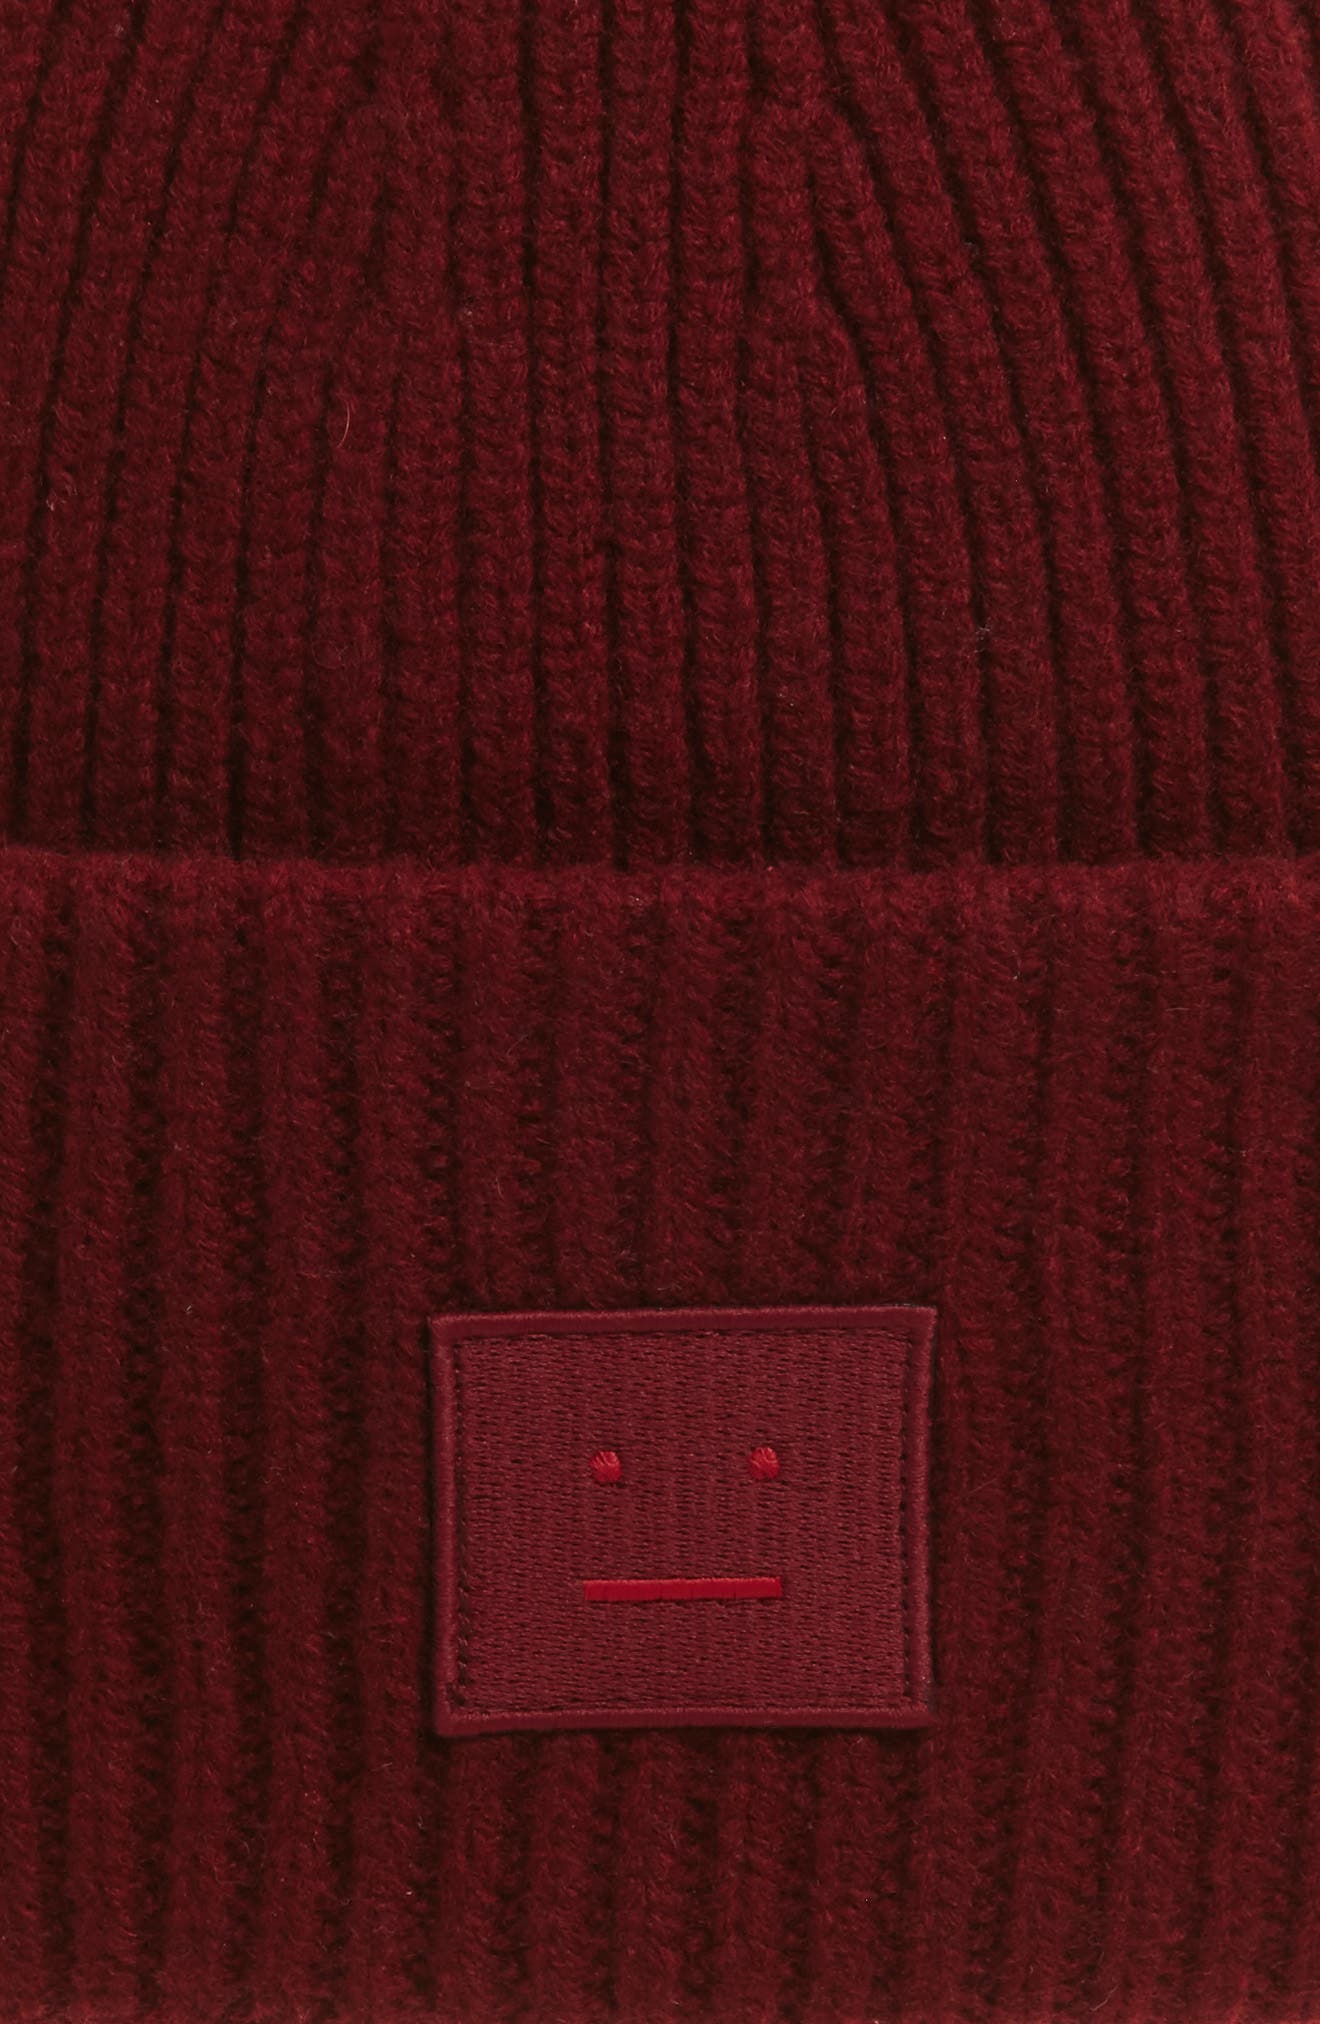 Pansy Rib Knit Wool Beanie,                             Alternate thumbnail 2, color,                             Burgundy